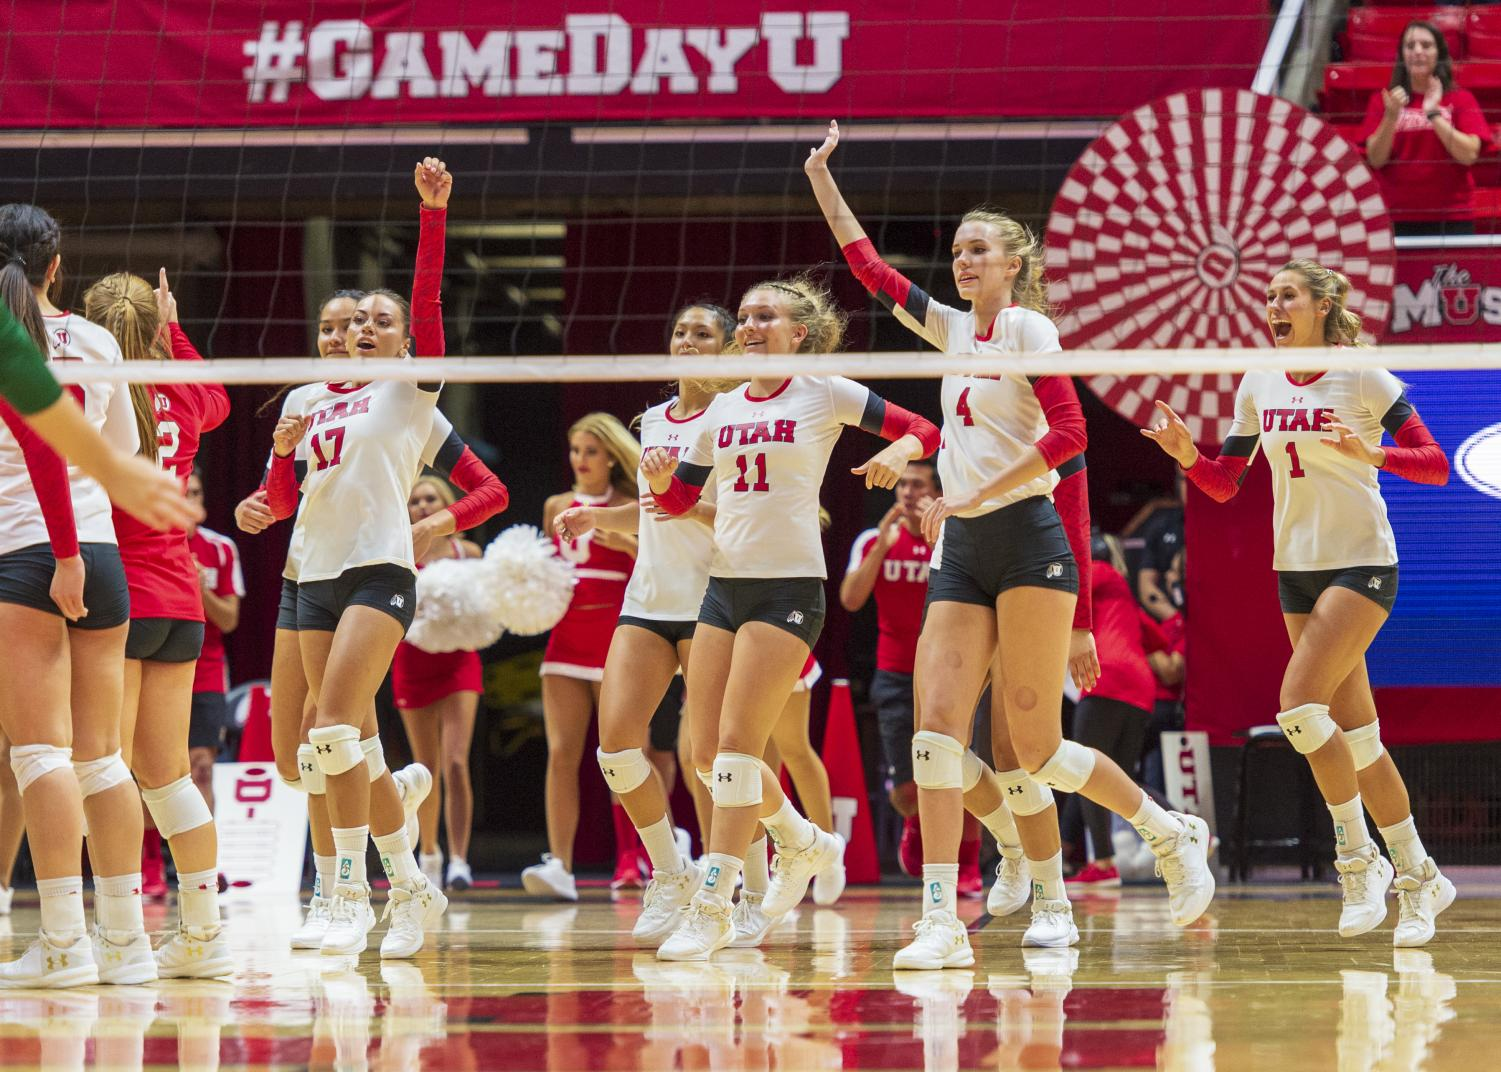 The University of Utah celebrates after their victory in an NCAA Volleyball match vs. UVU at the Jon M. Huntsman Center in Salt Lake City, Utah on Friday, Sept. 14, 2018 (Photo by Kiffer Creveling | The Daily Utah Chronicle)